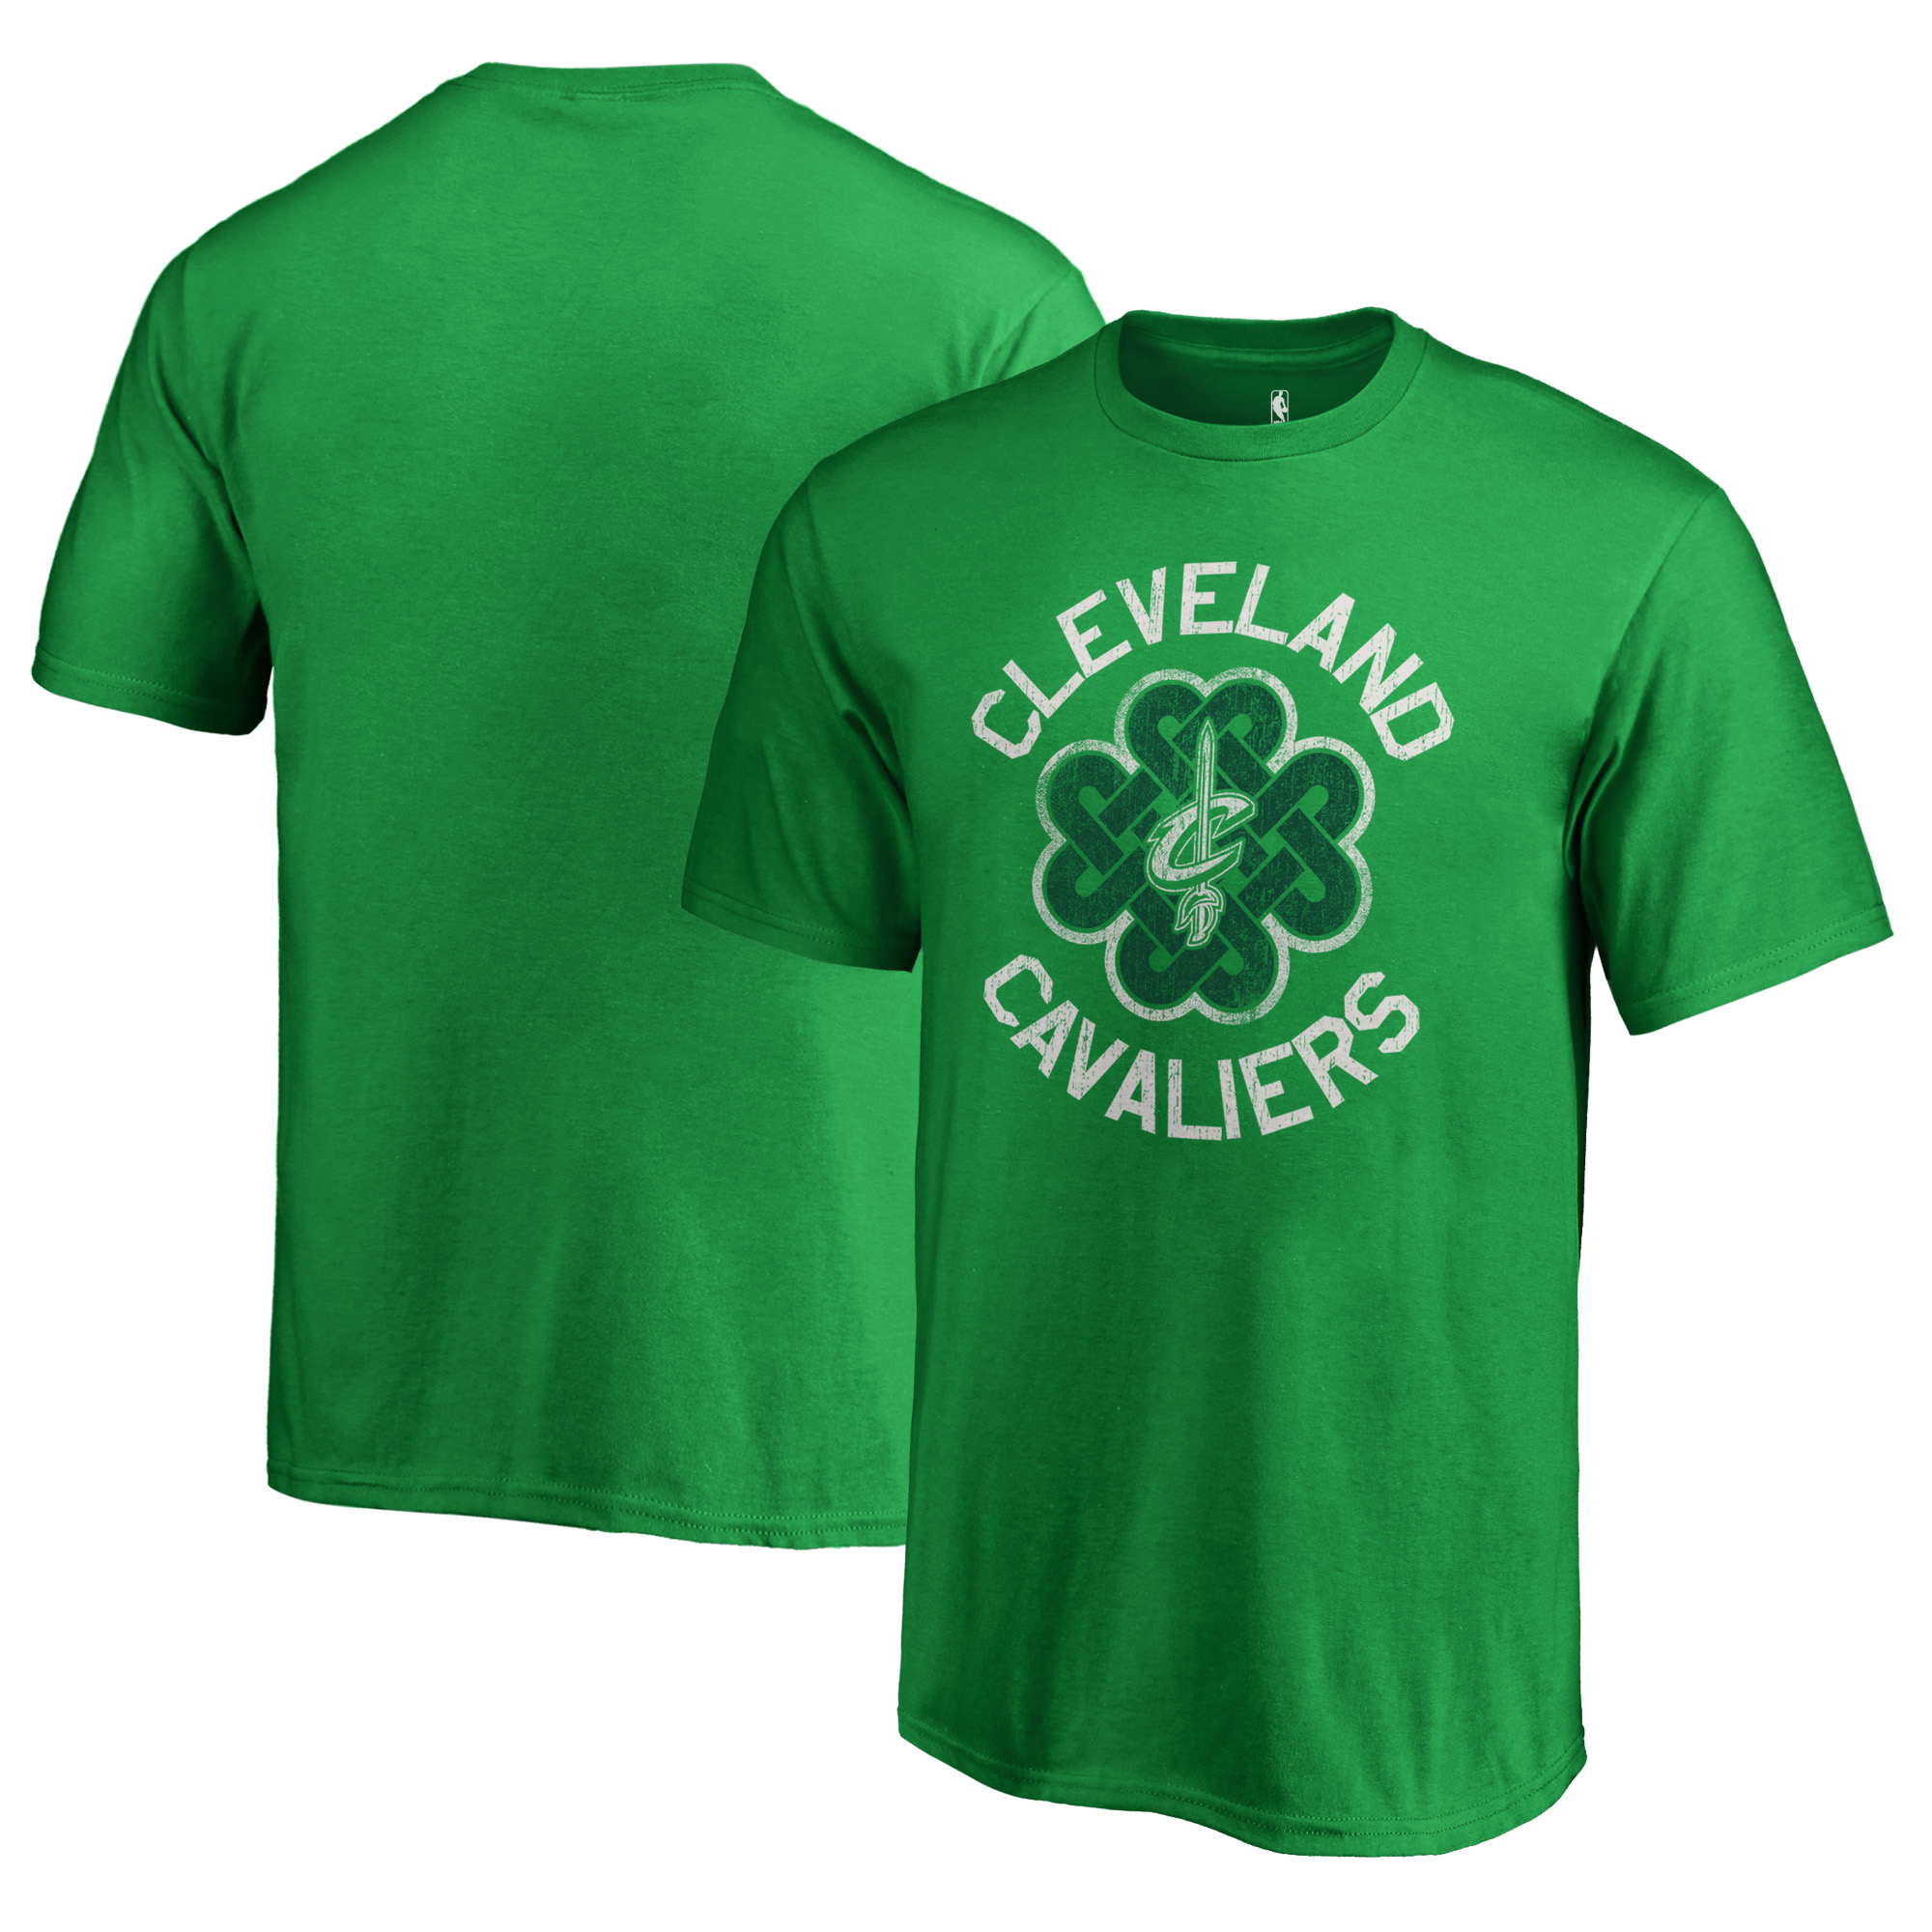 Cleveland Cavaliers Fanatics Branded Youth St. Patrick's Day Luck Tradition T-Shirt - Kelly Green